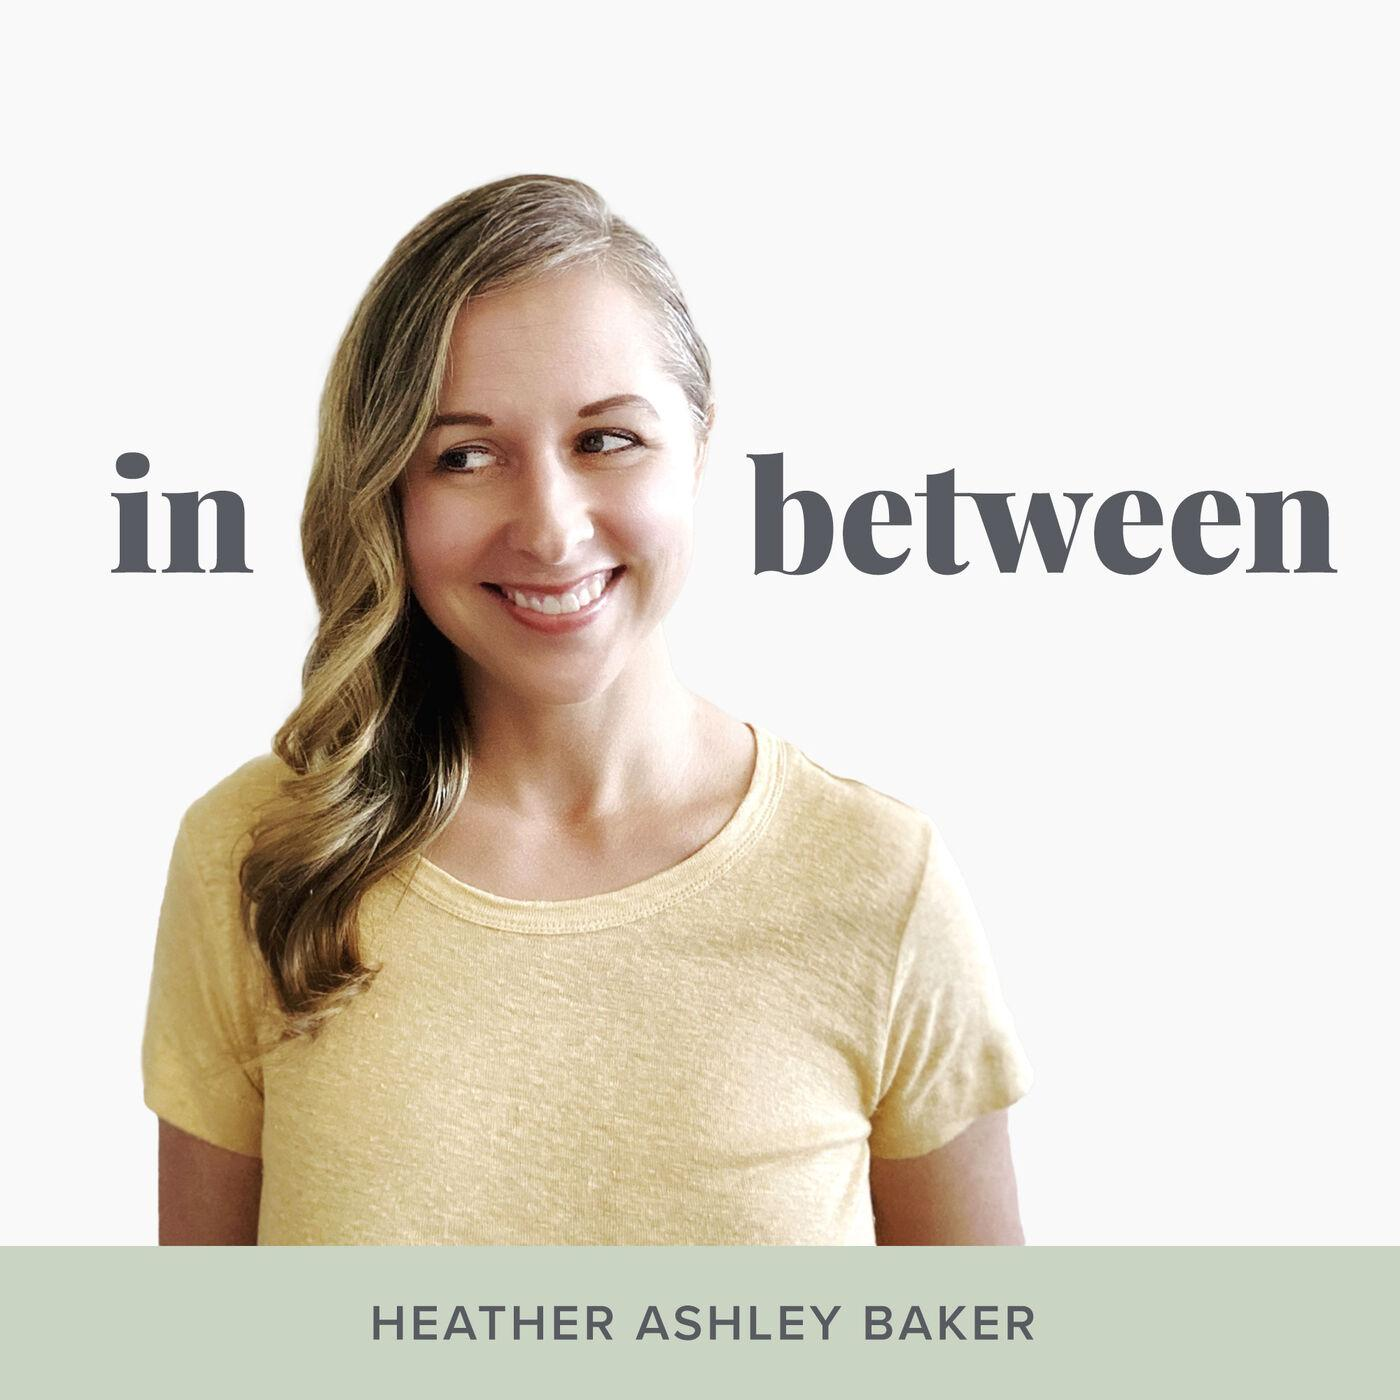 Brandy Heyde Montague on the in between podcast with Heather Ashley Baker talking about a conscious lifestyle, helping animals and the earth